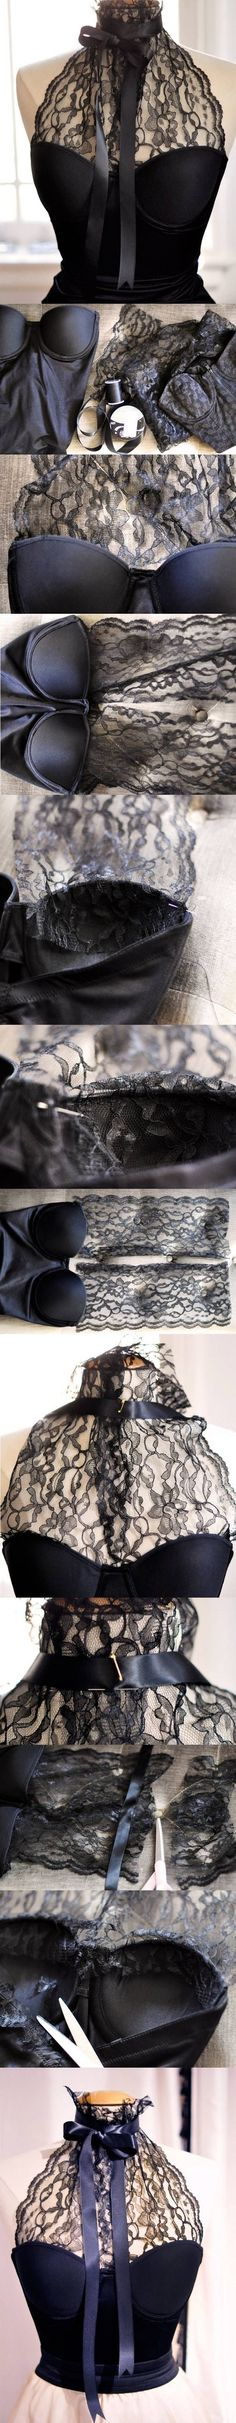 DIY LACE HALTER BUSTIER - I imagine this in white, with a tulle skirt, a diy wedding dress